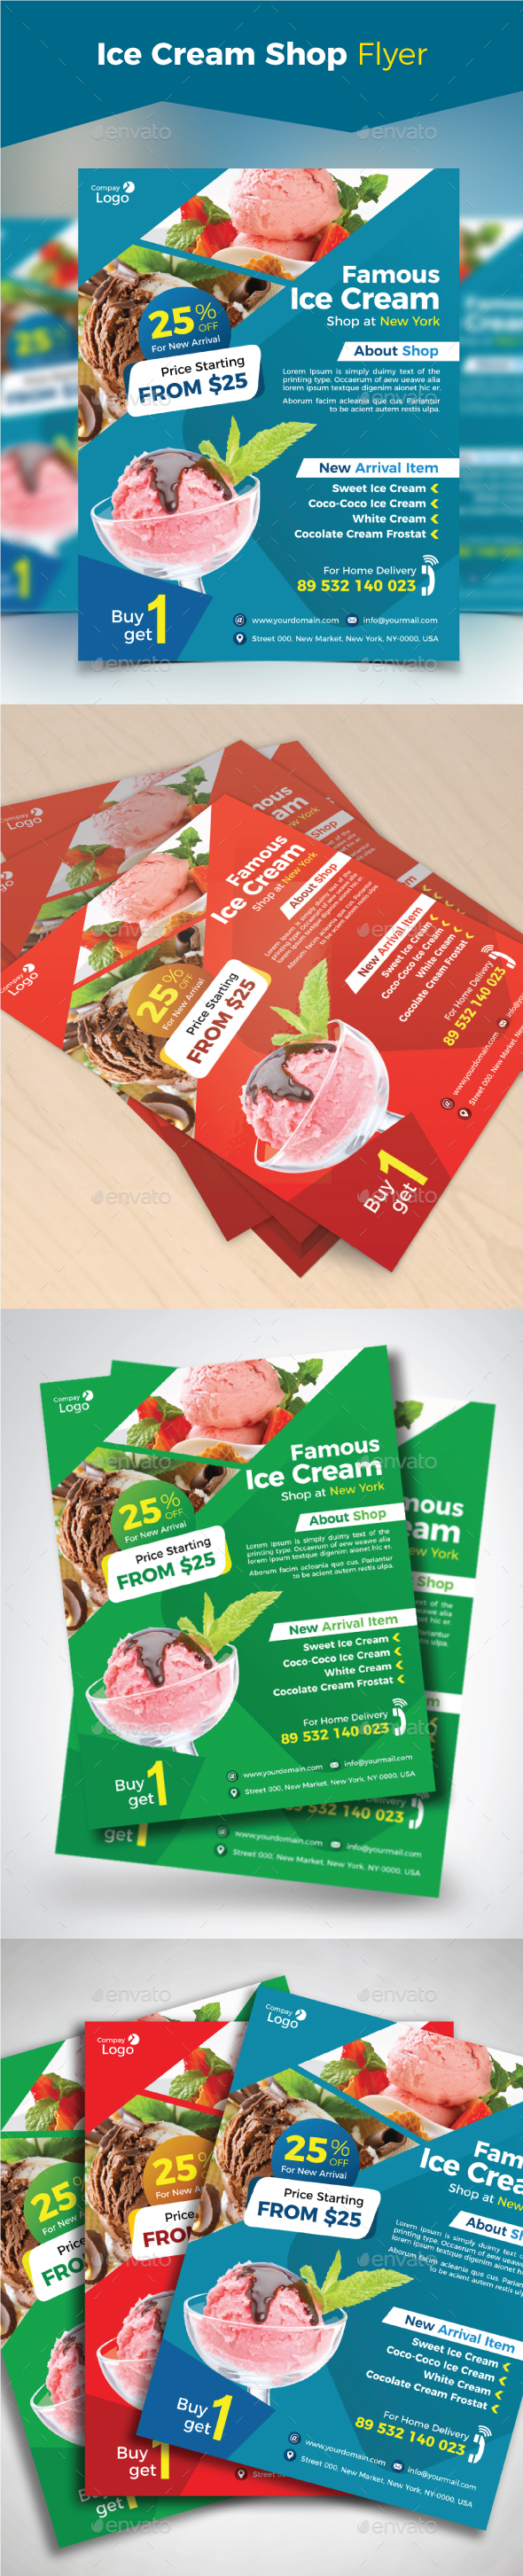 Ice Cream Shop Flyer - Restaurant Flyers